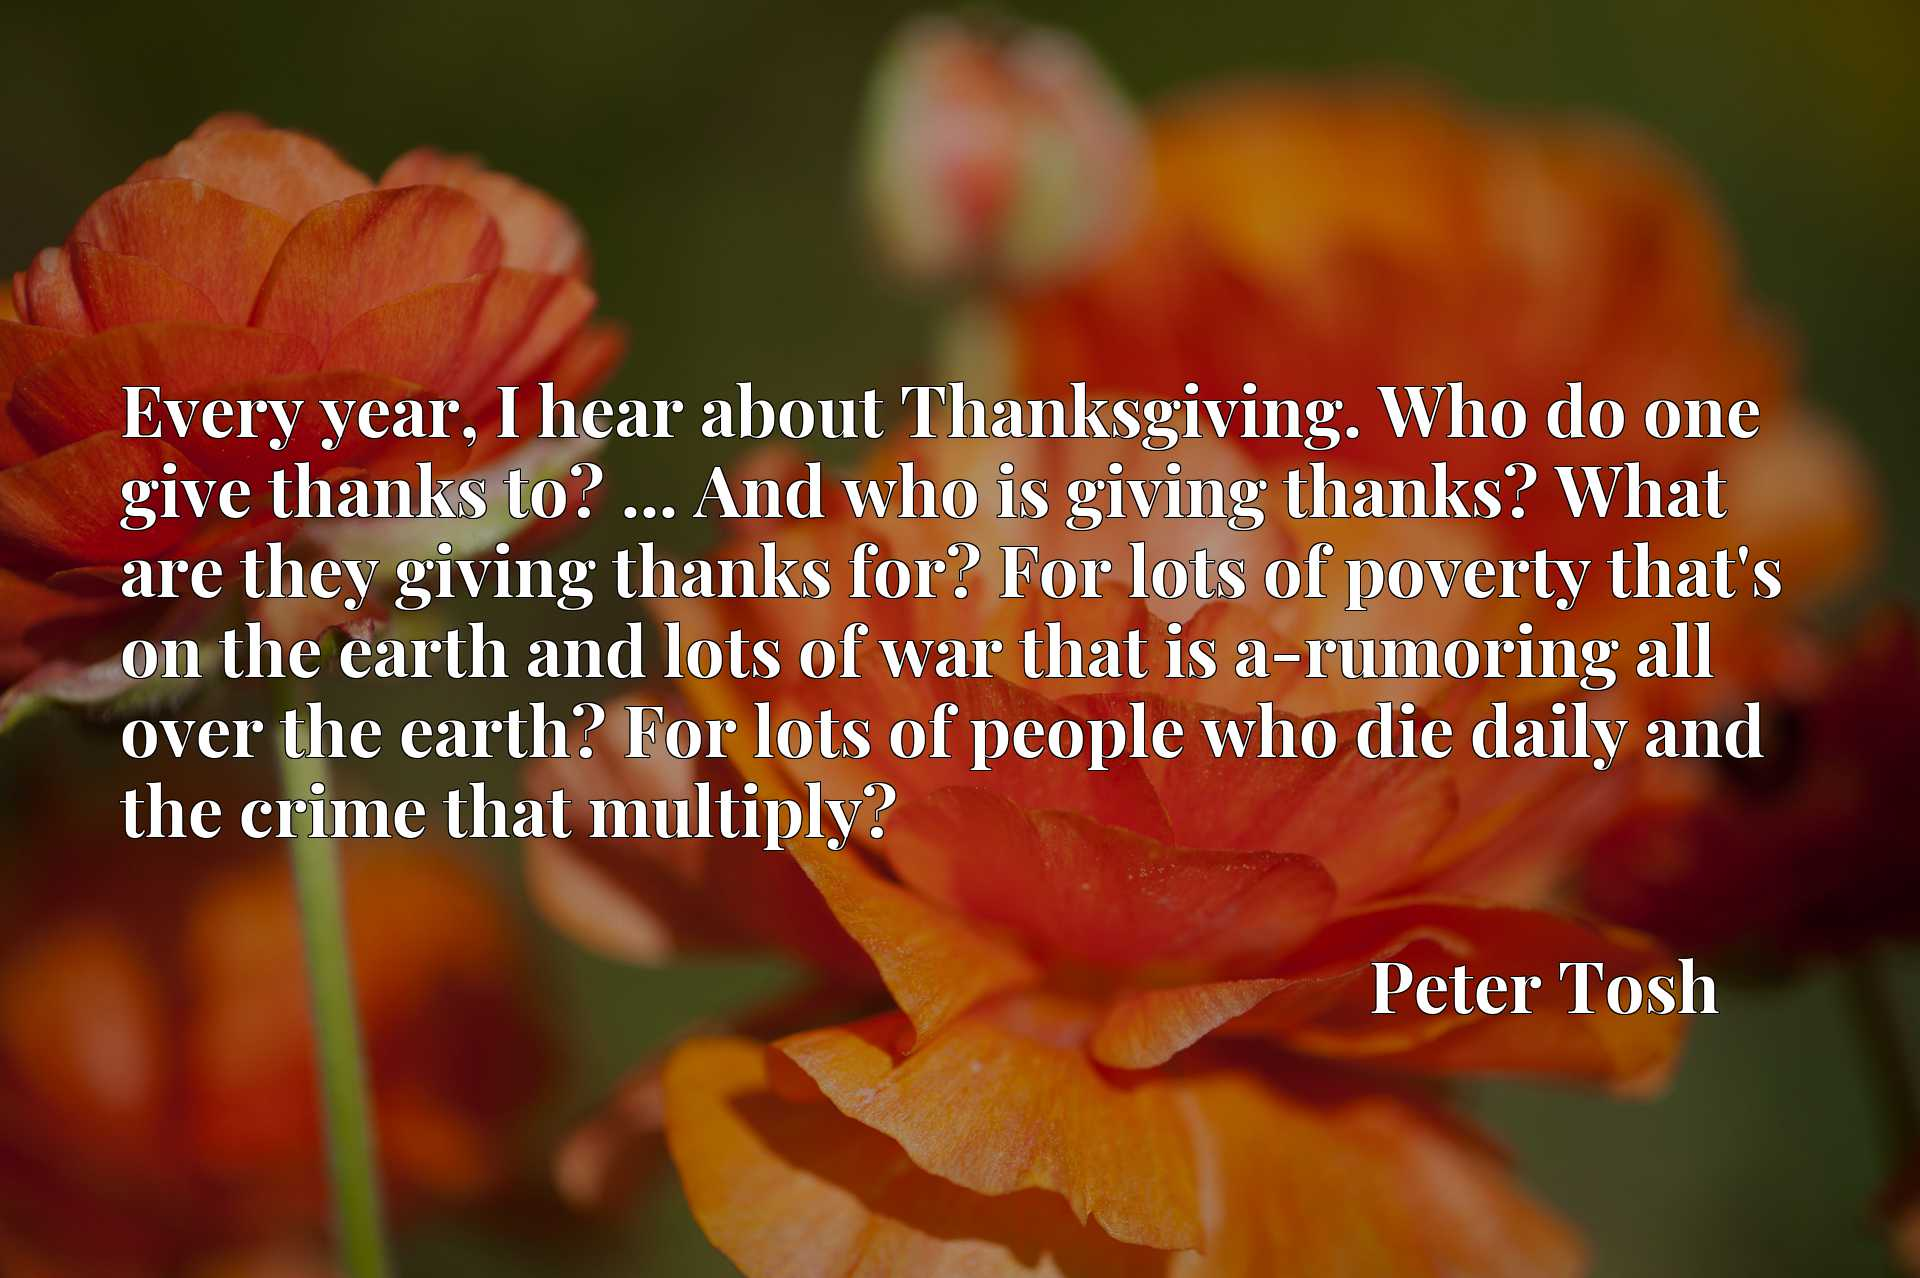 Every year, I hear about Thanksgiving. Who do one give thanks to? ... And who is giving thanks? What are they giving thanks for? For lots of poverty that's on the earth and lots of war that is a-rumoring all over the earth? For lots of people who die daily and the crime that multiply?